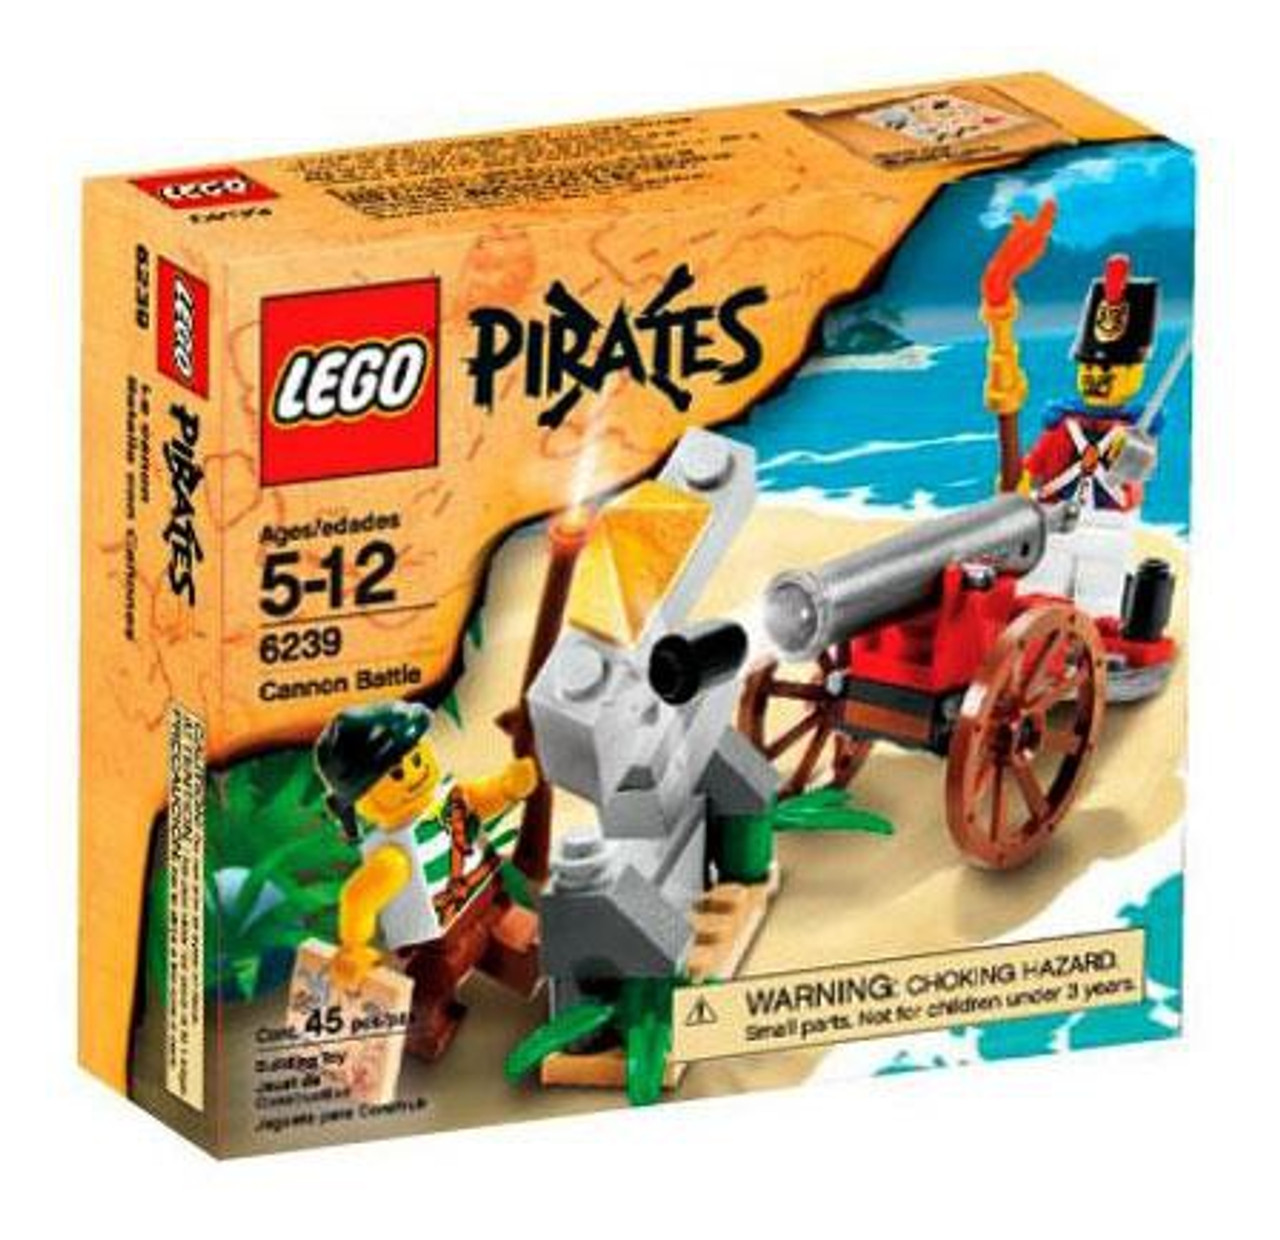 LEGO Pirates Cannon Battle Set #6239